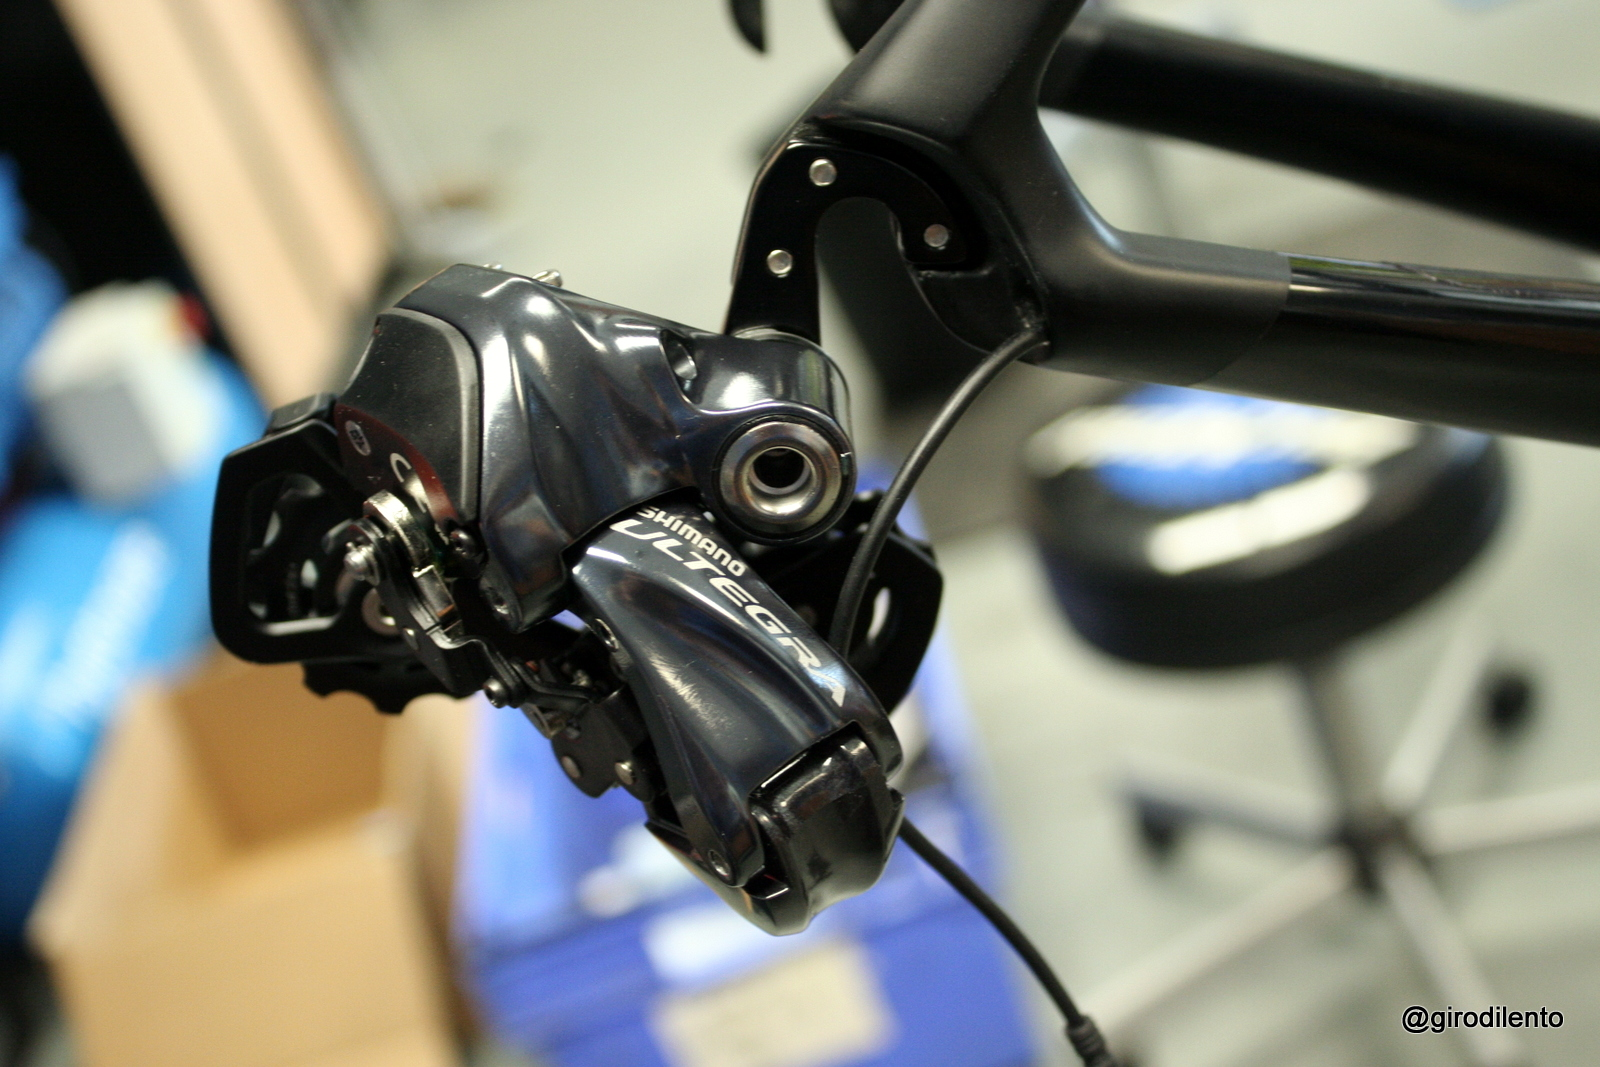 Di2 Rear mech prior to indexing adjustments